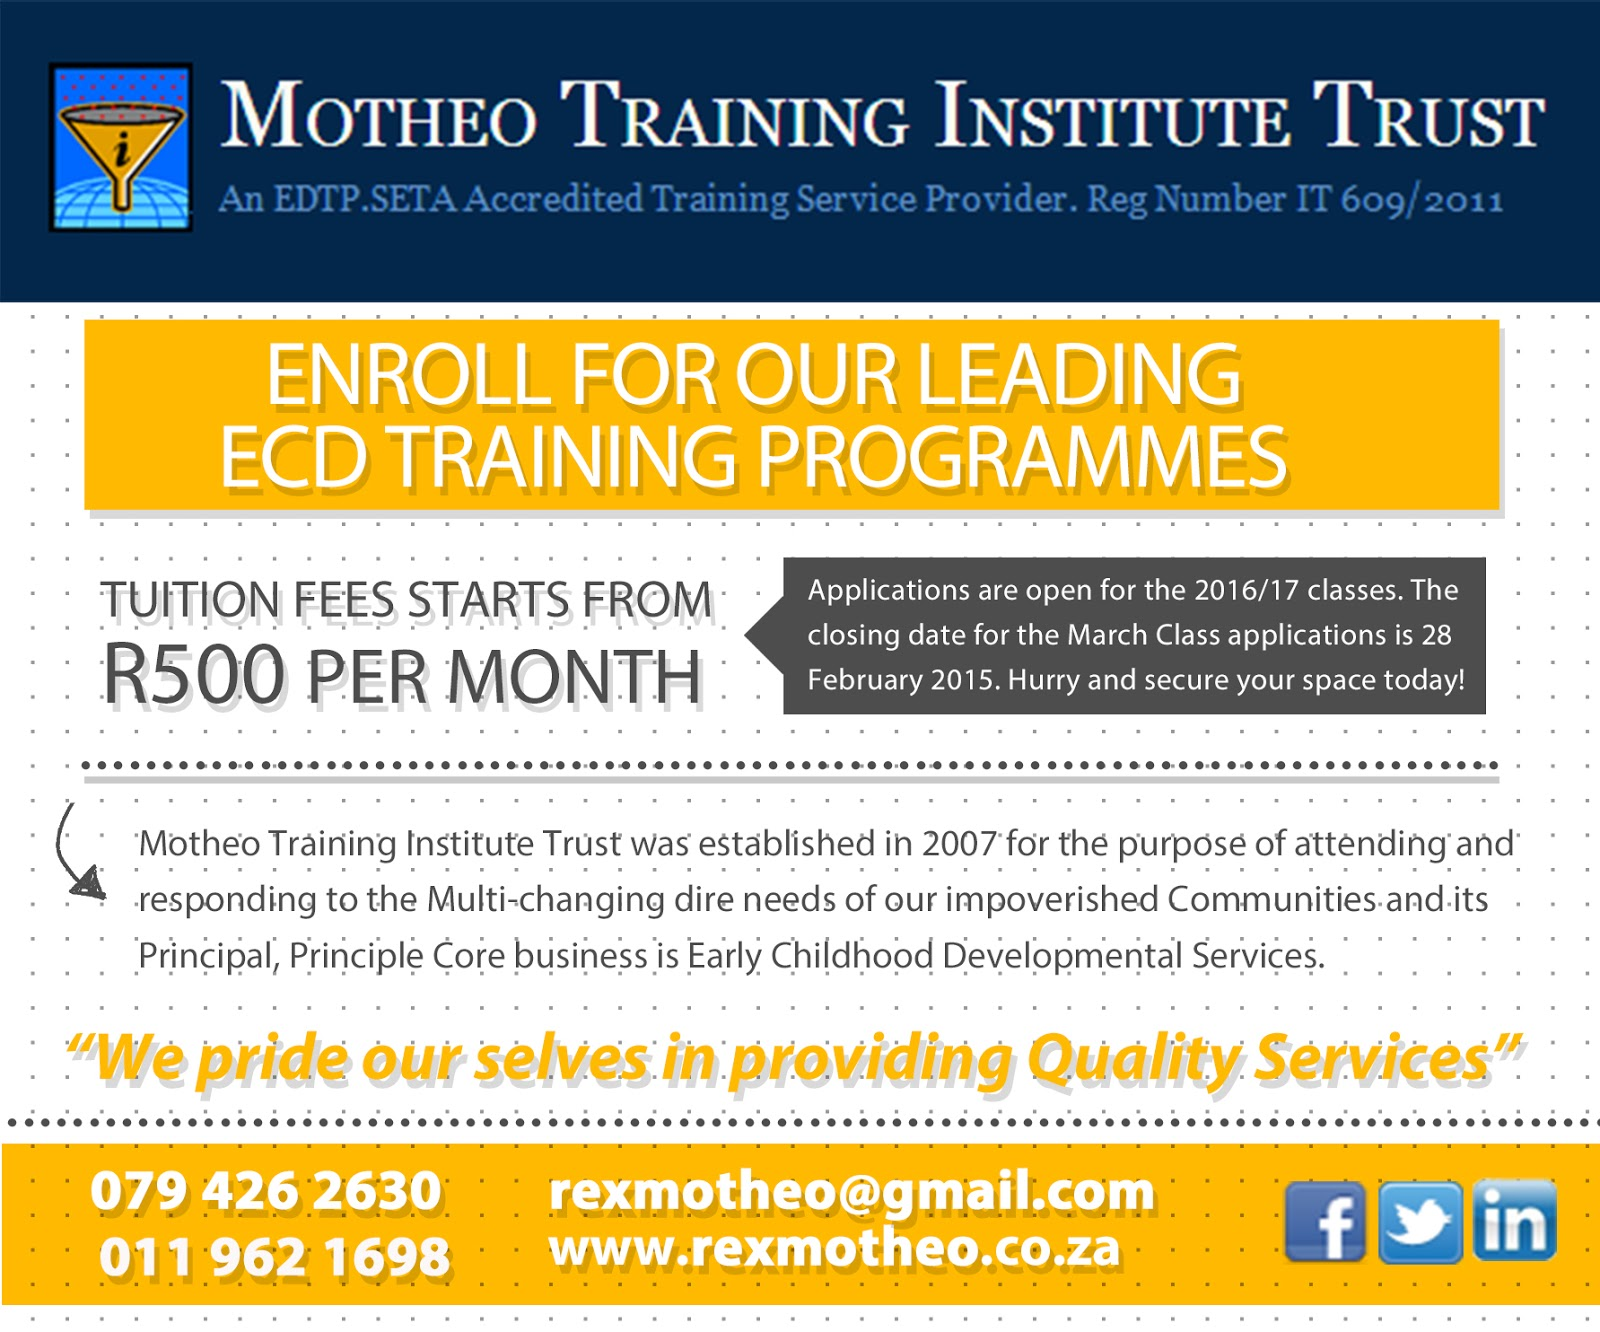 Motheo Training Institute Trust: 2016